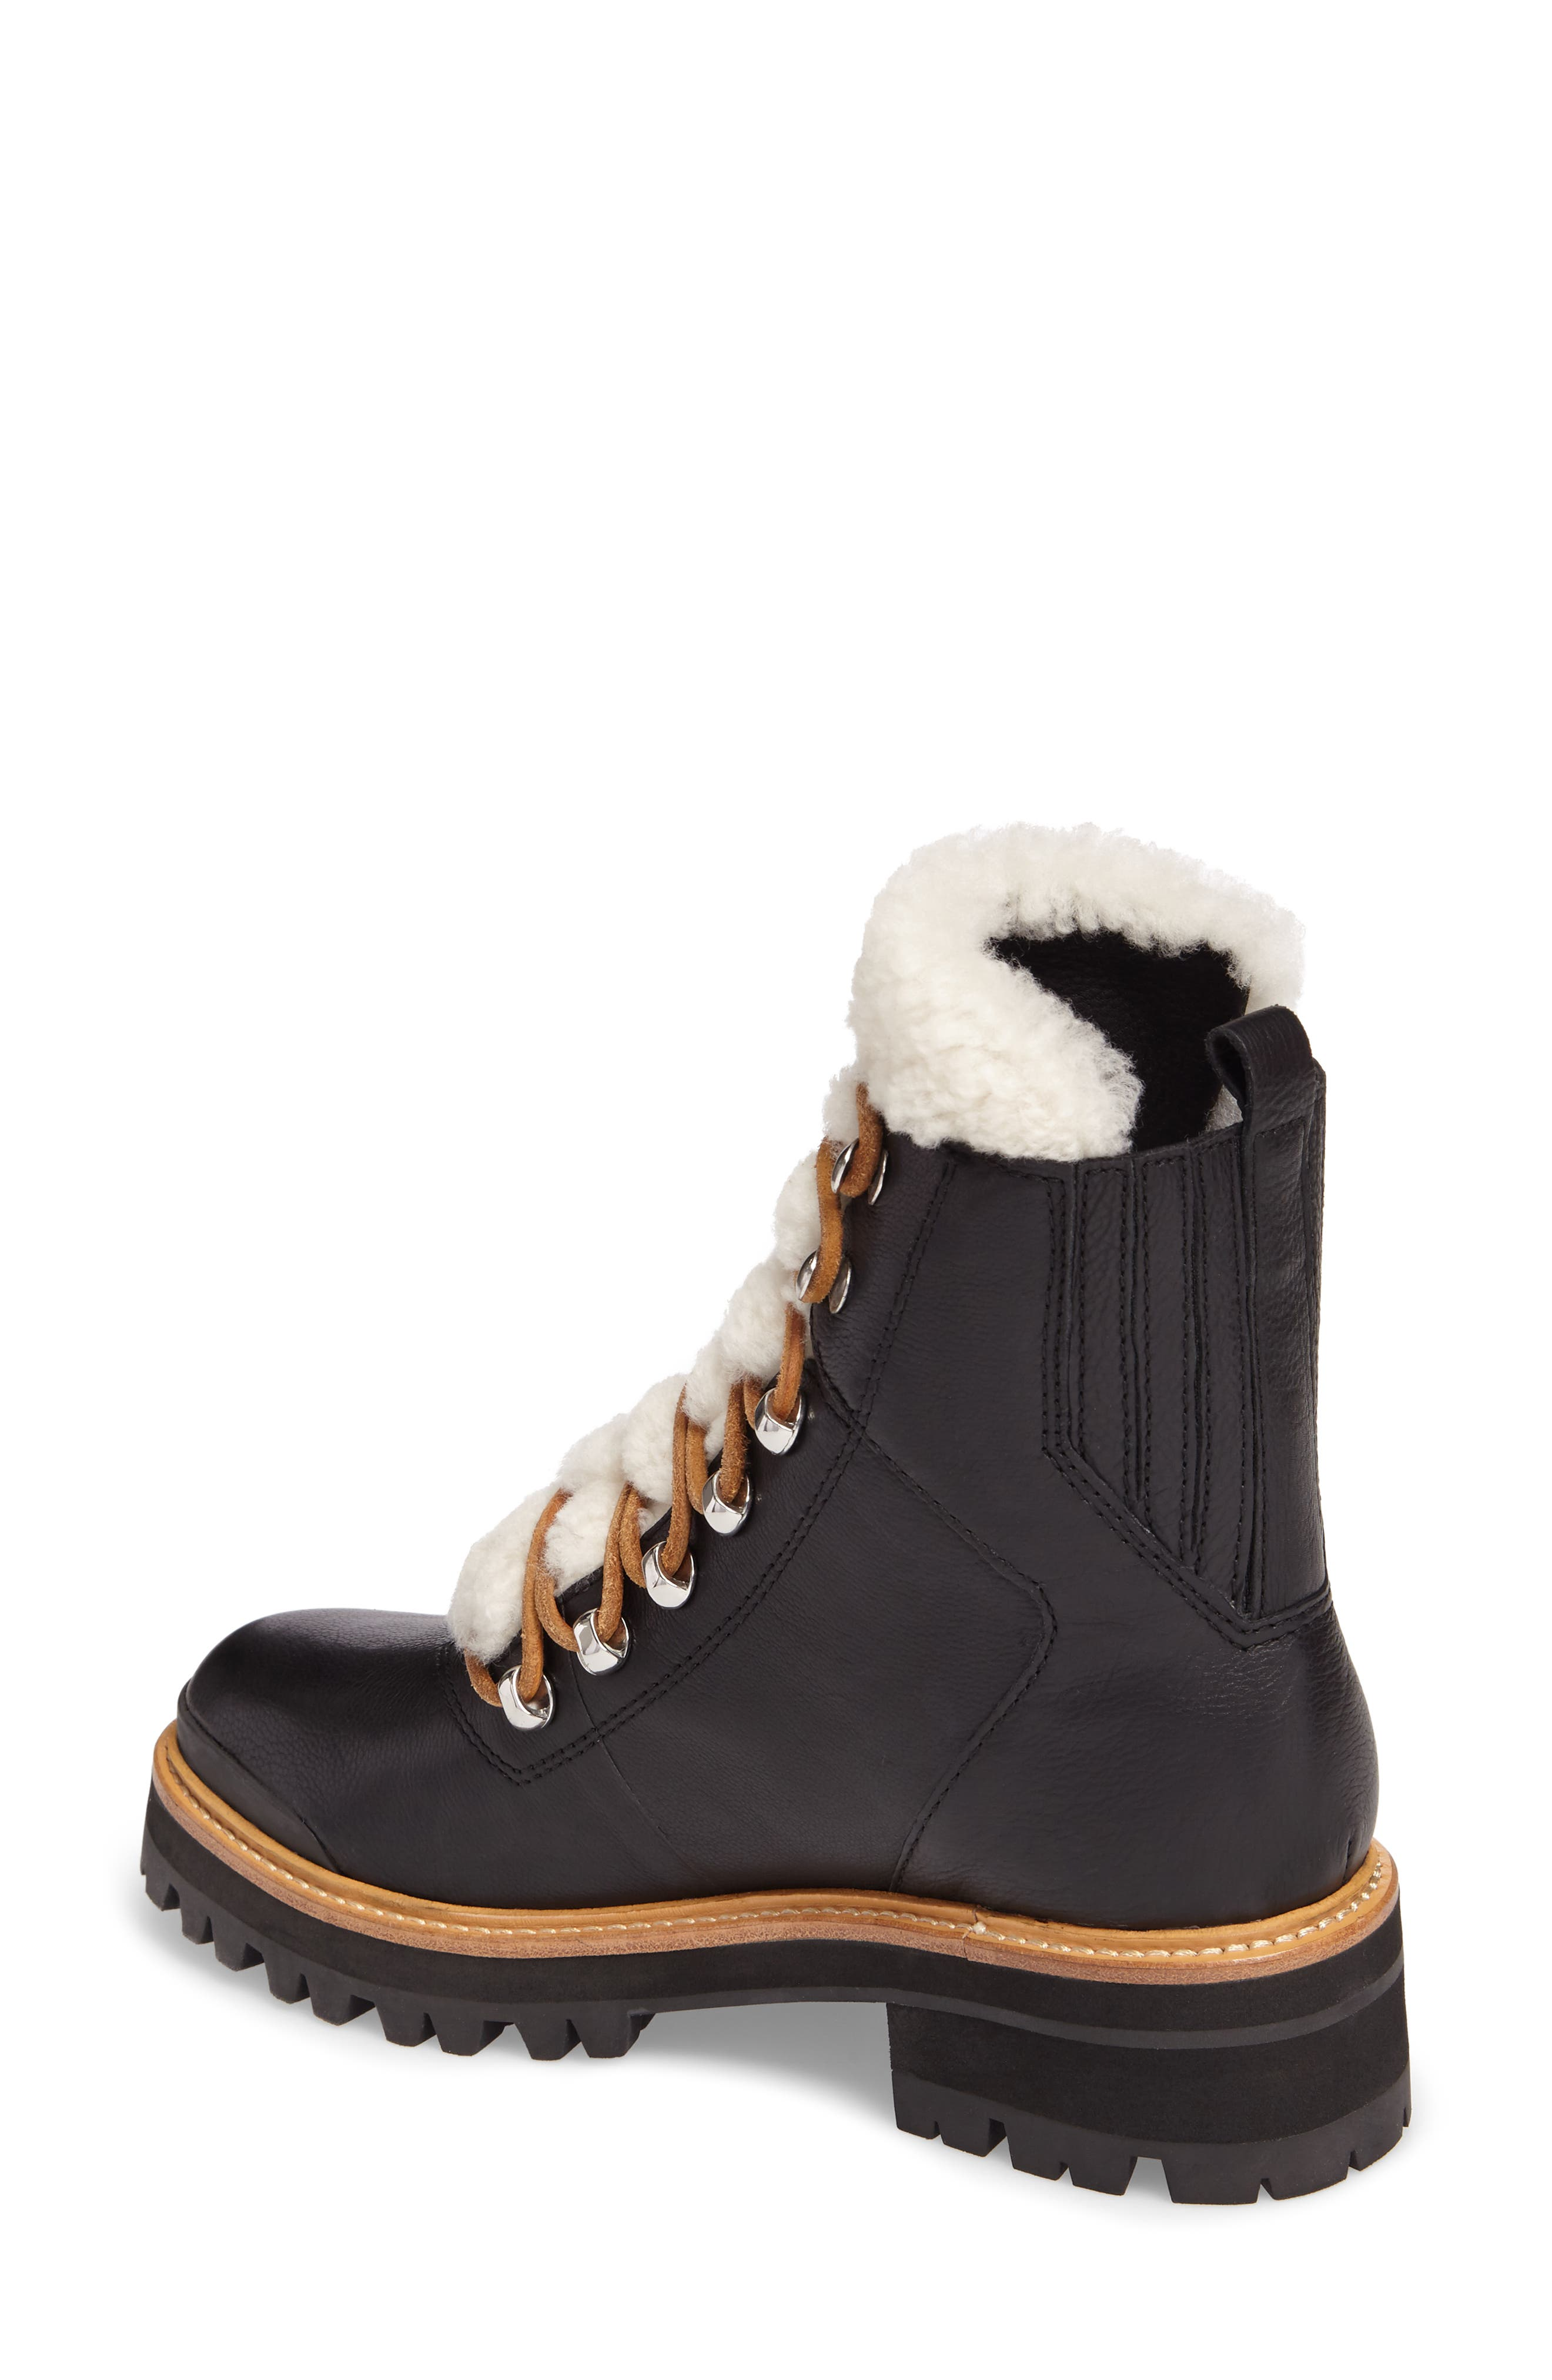 MARC FISHER LTD, Izzie Genuine Shearling Lace-Up Boot, Alternate thumbnail 2, color, BLACK LEATHER